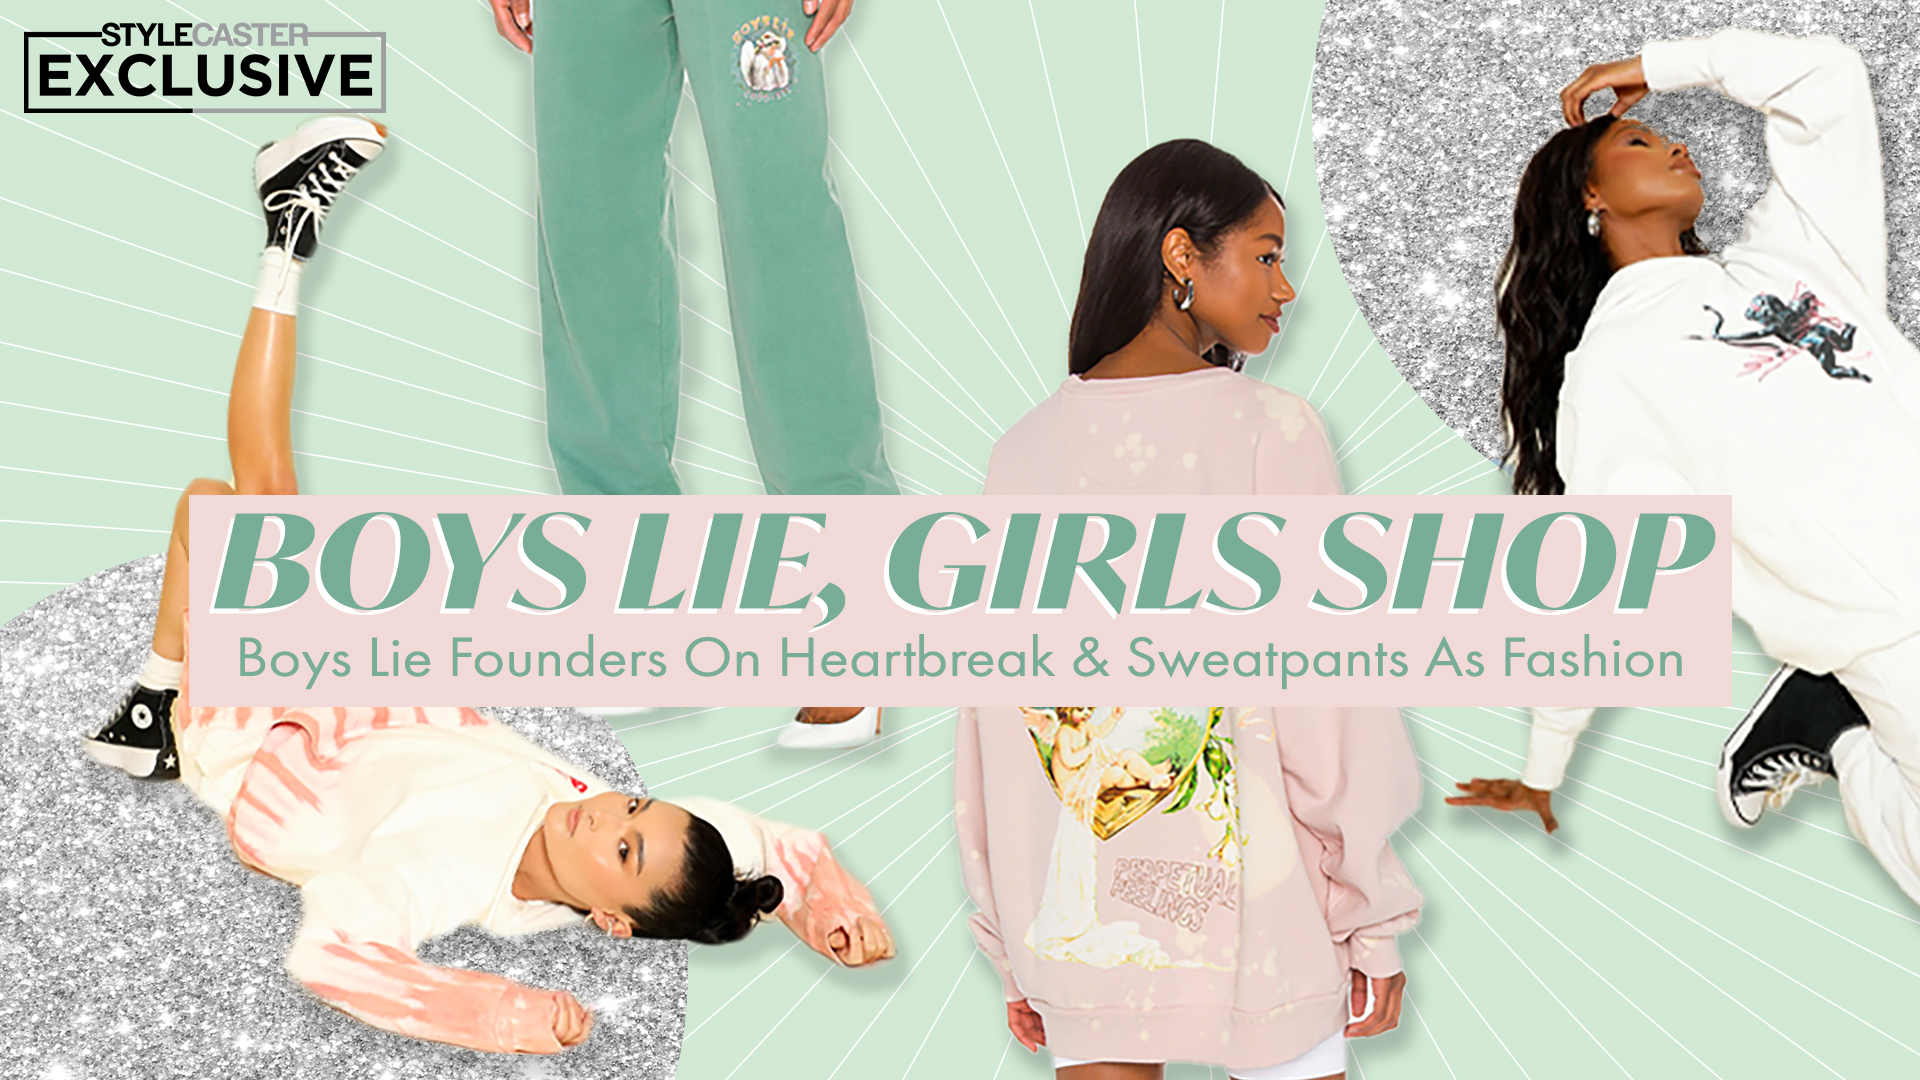 No Lies—Boys Lie Is The Only Loungewear Brand I'm Wearing Post-Pandemic